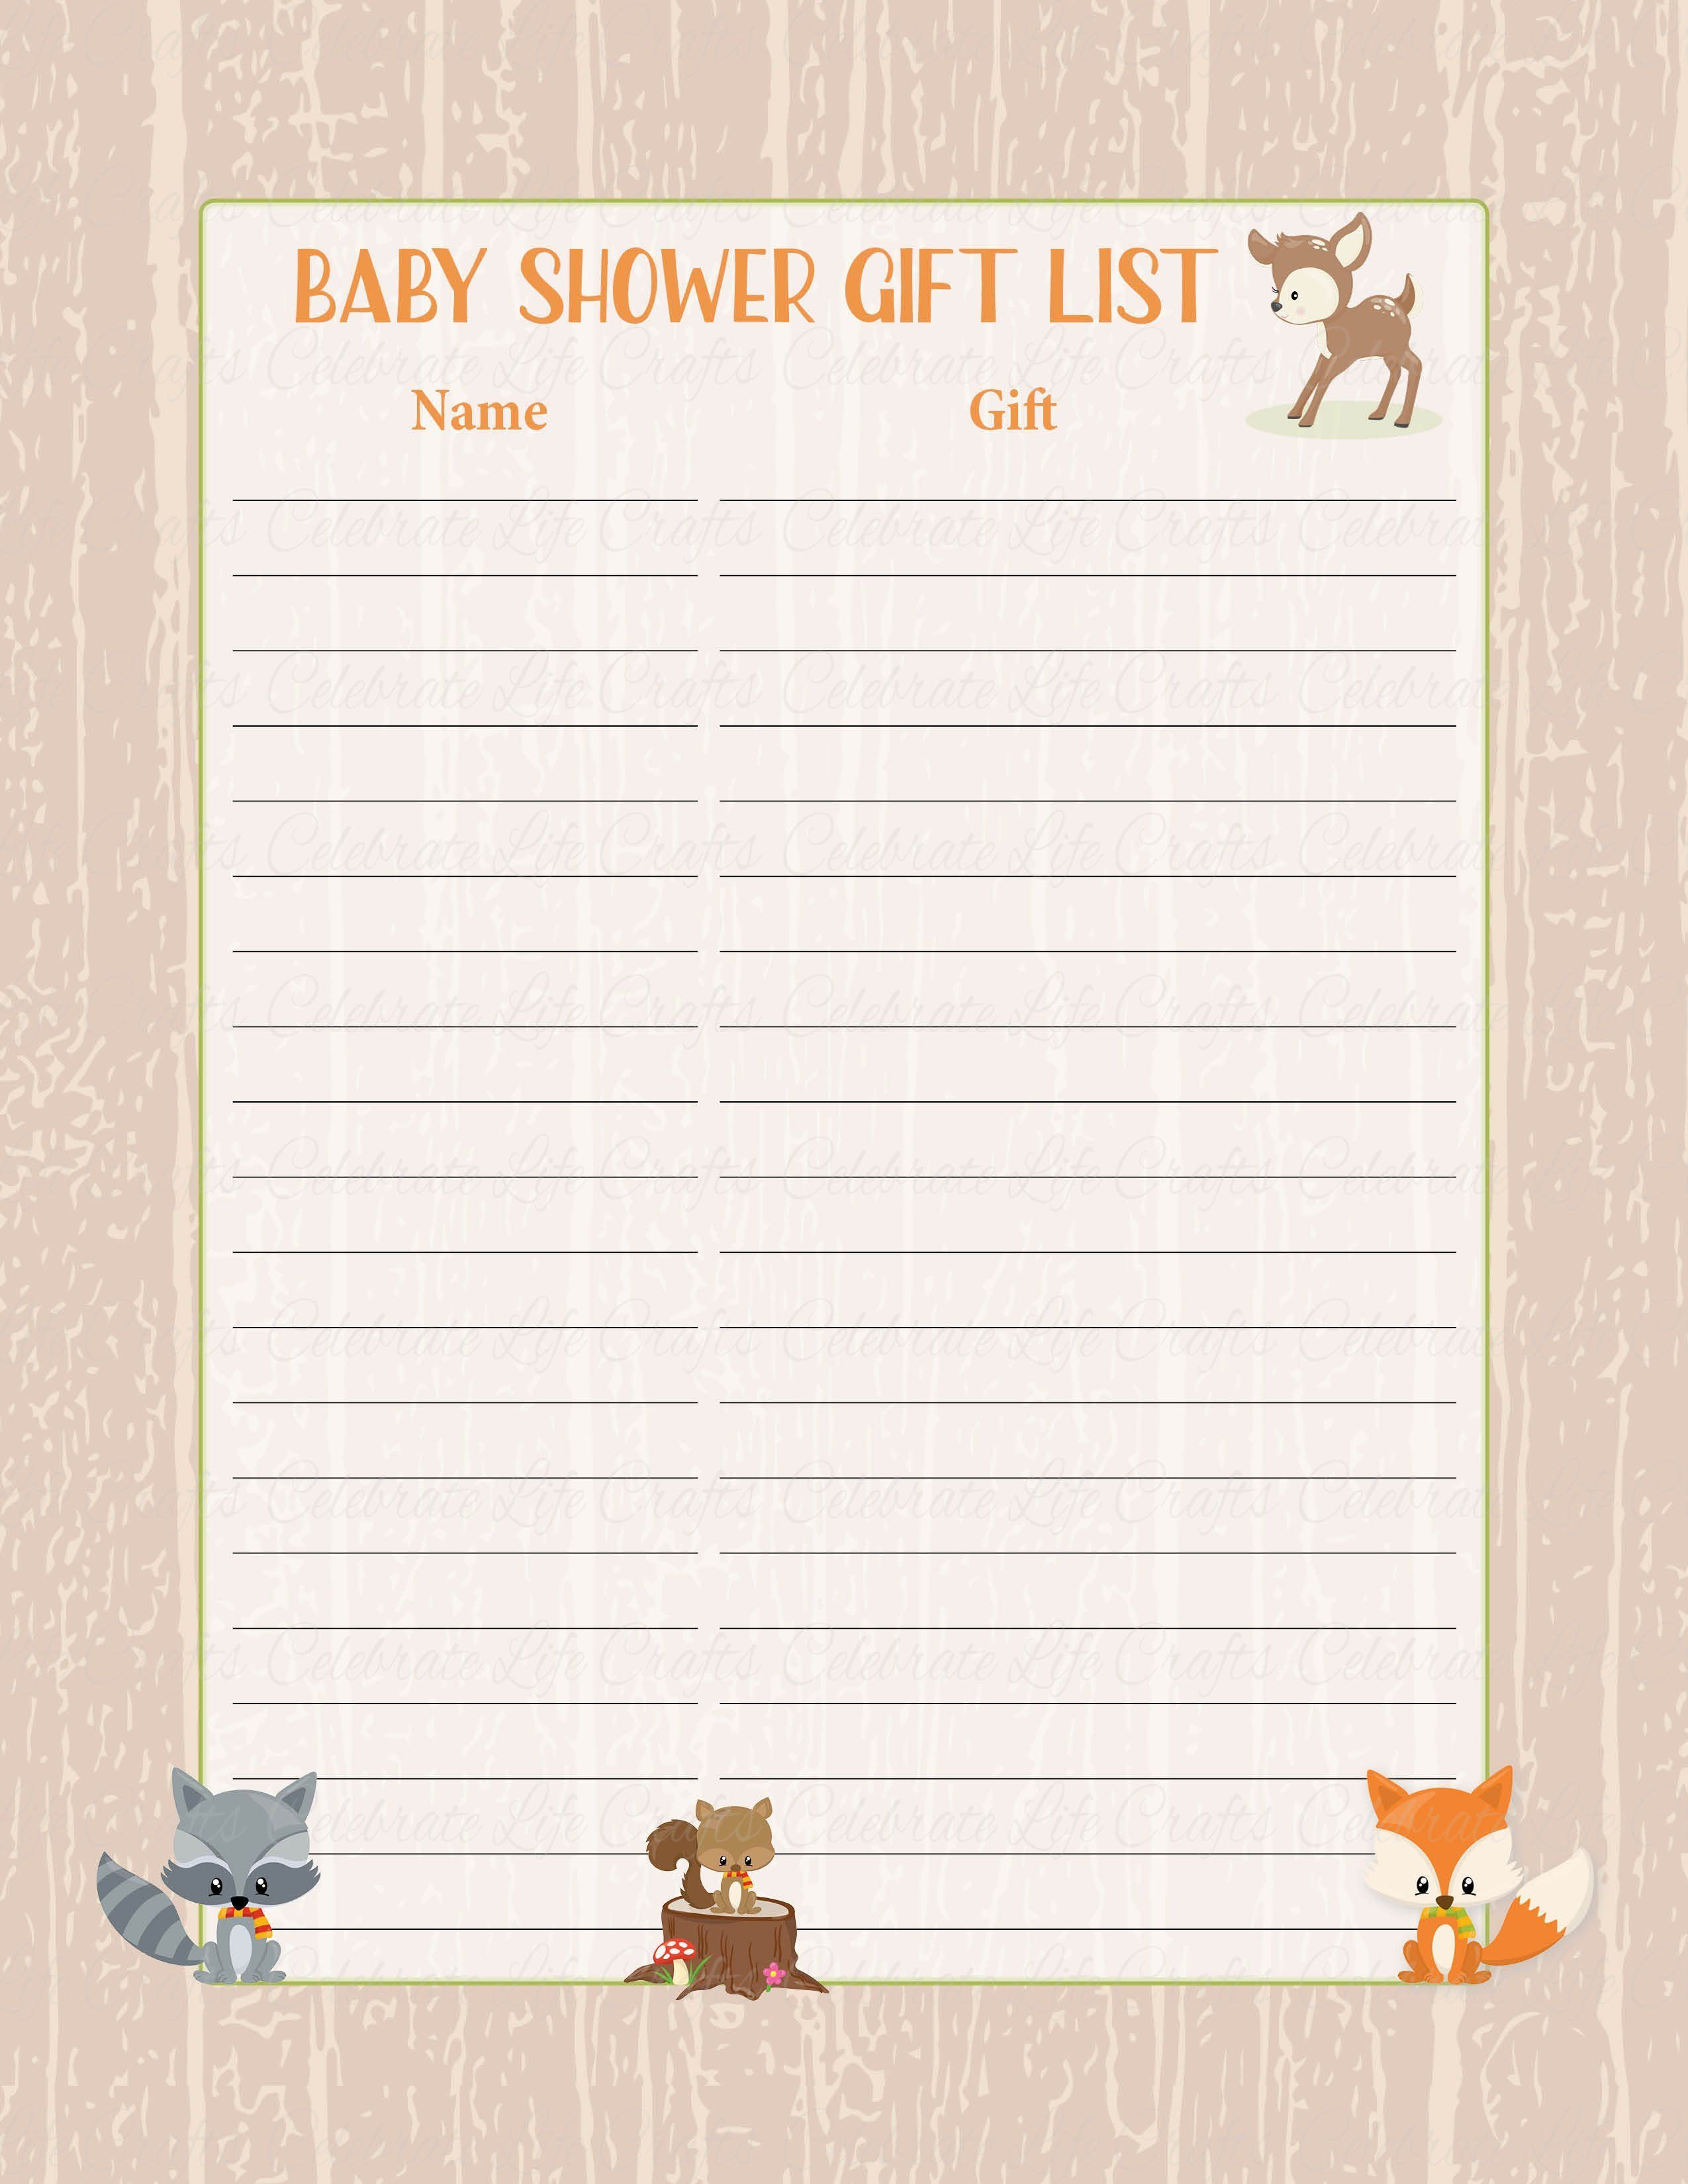 Baby Shower Gift List Sign Printable Forest Animals Woodland Baby Shower Decorations B18002 Baby Shower Gift List Woodland Baby Shower Decorations Baby Shower Woodland Theme